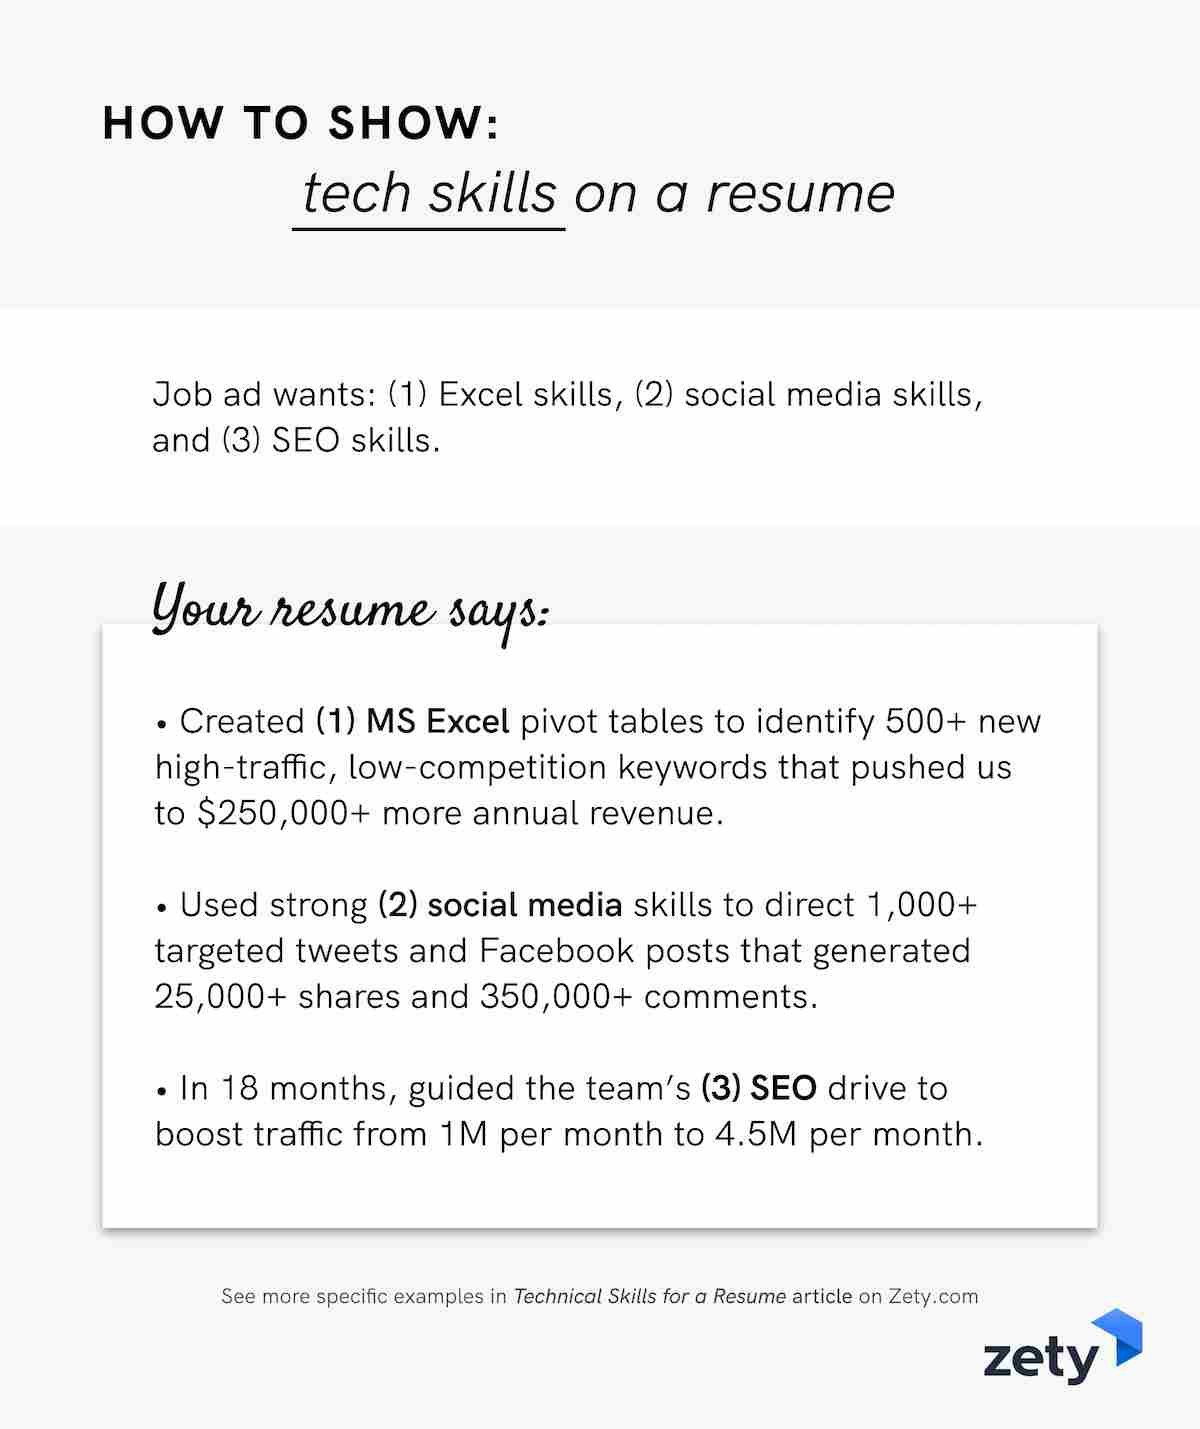 technical skills for resume with examples should you include months on to show tech and Resume Should You Include Months On A Resume